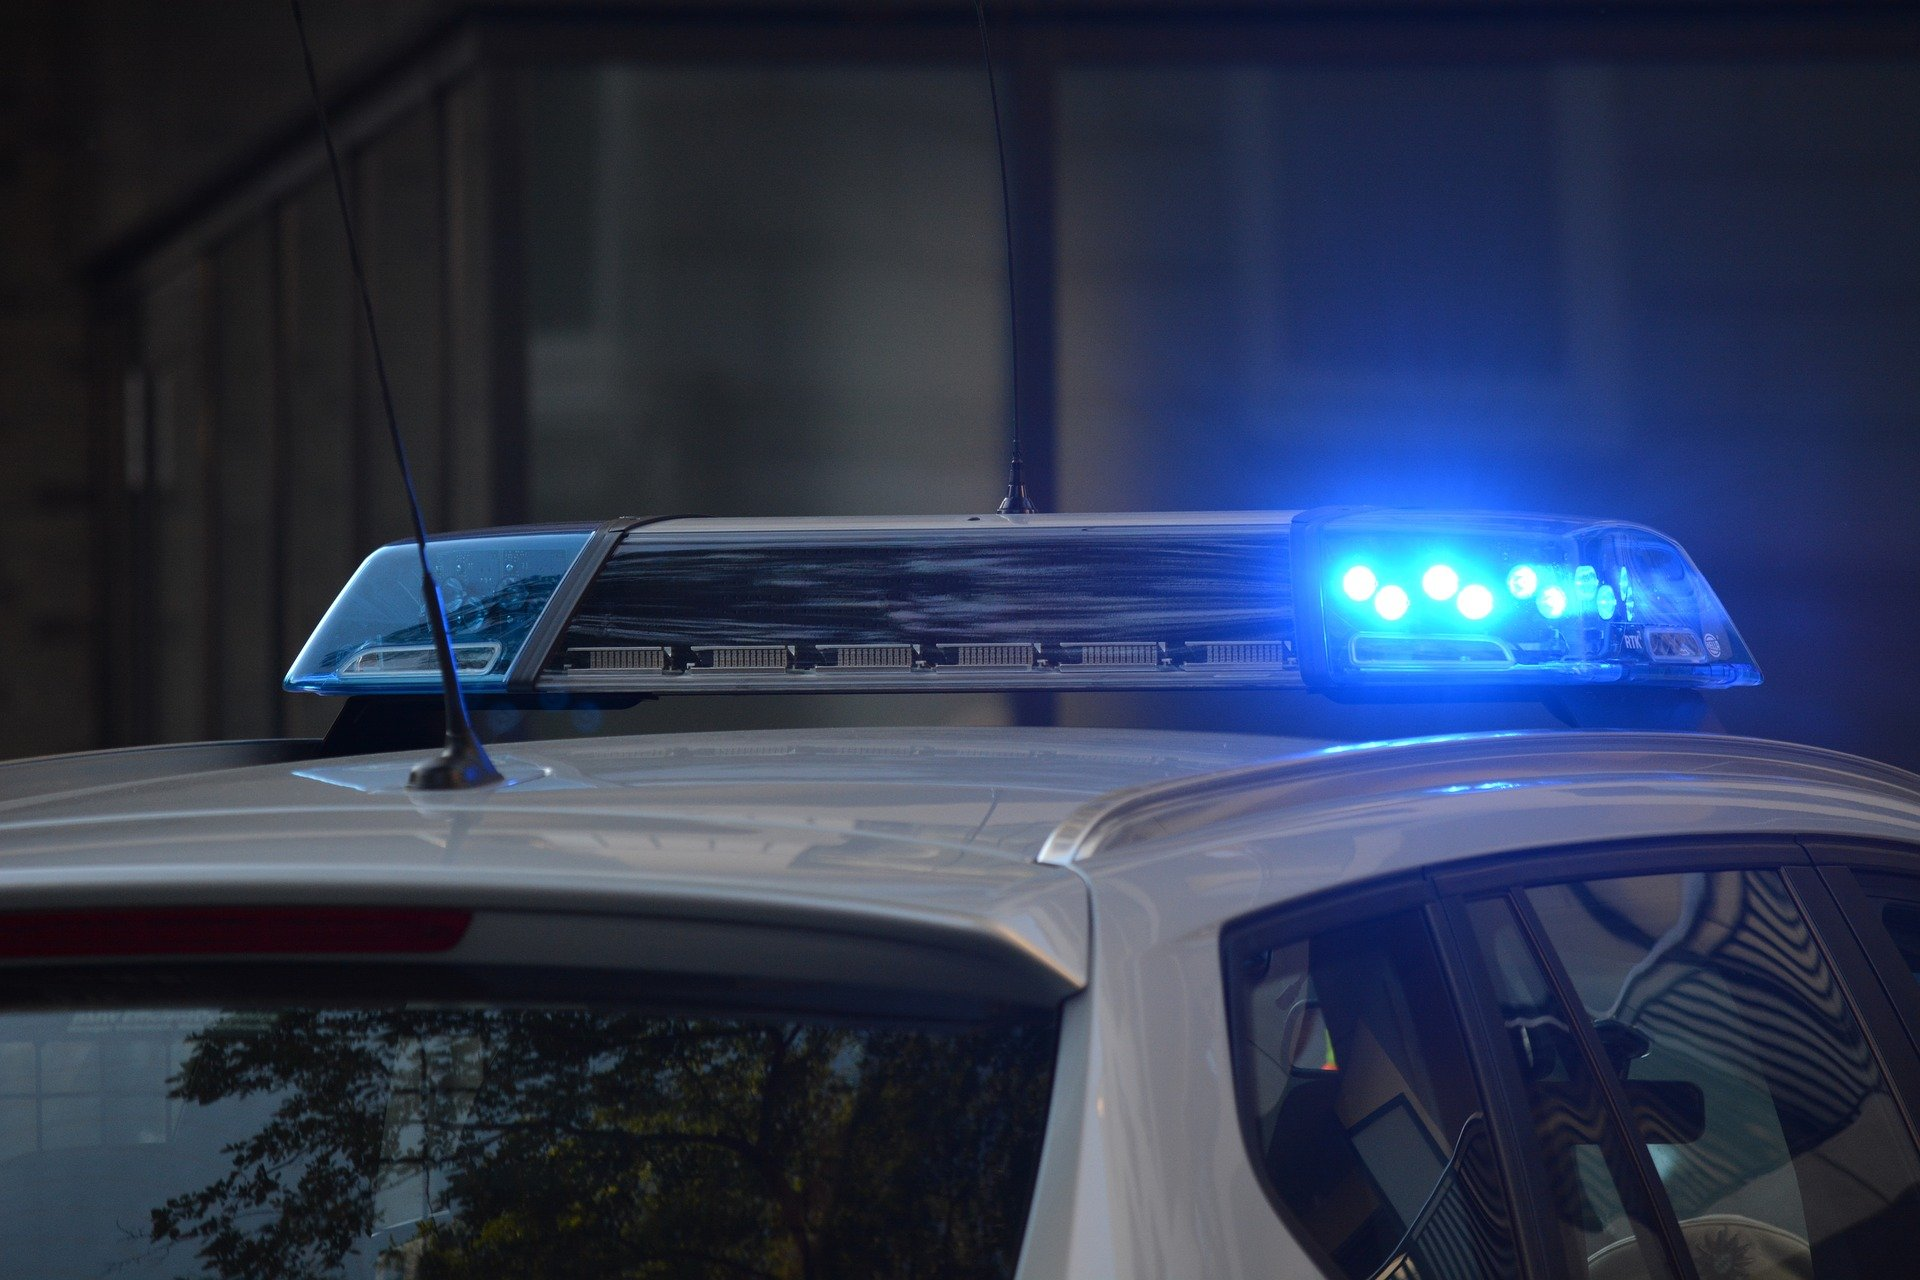 Police car with blue lights on the roof | Photo: Pixabay